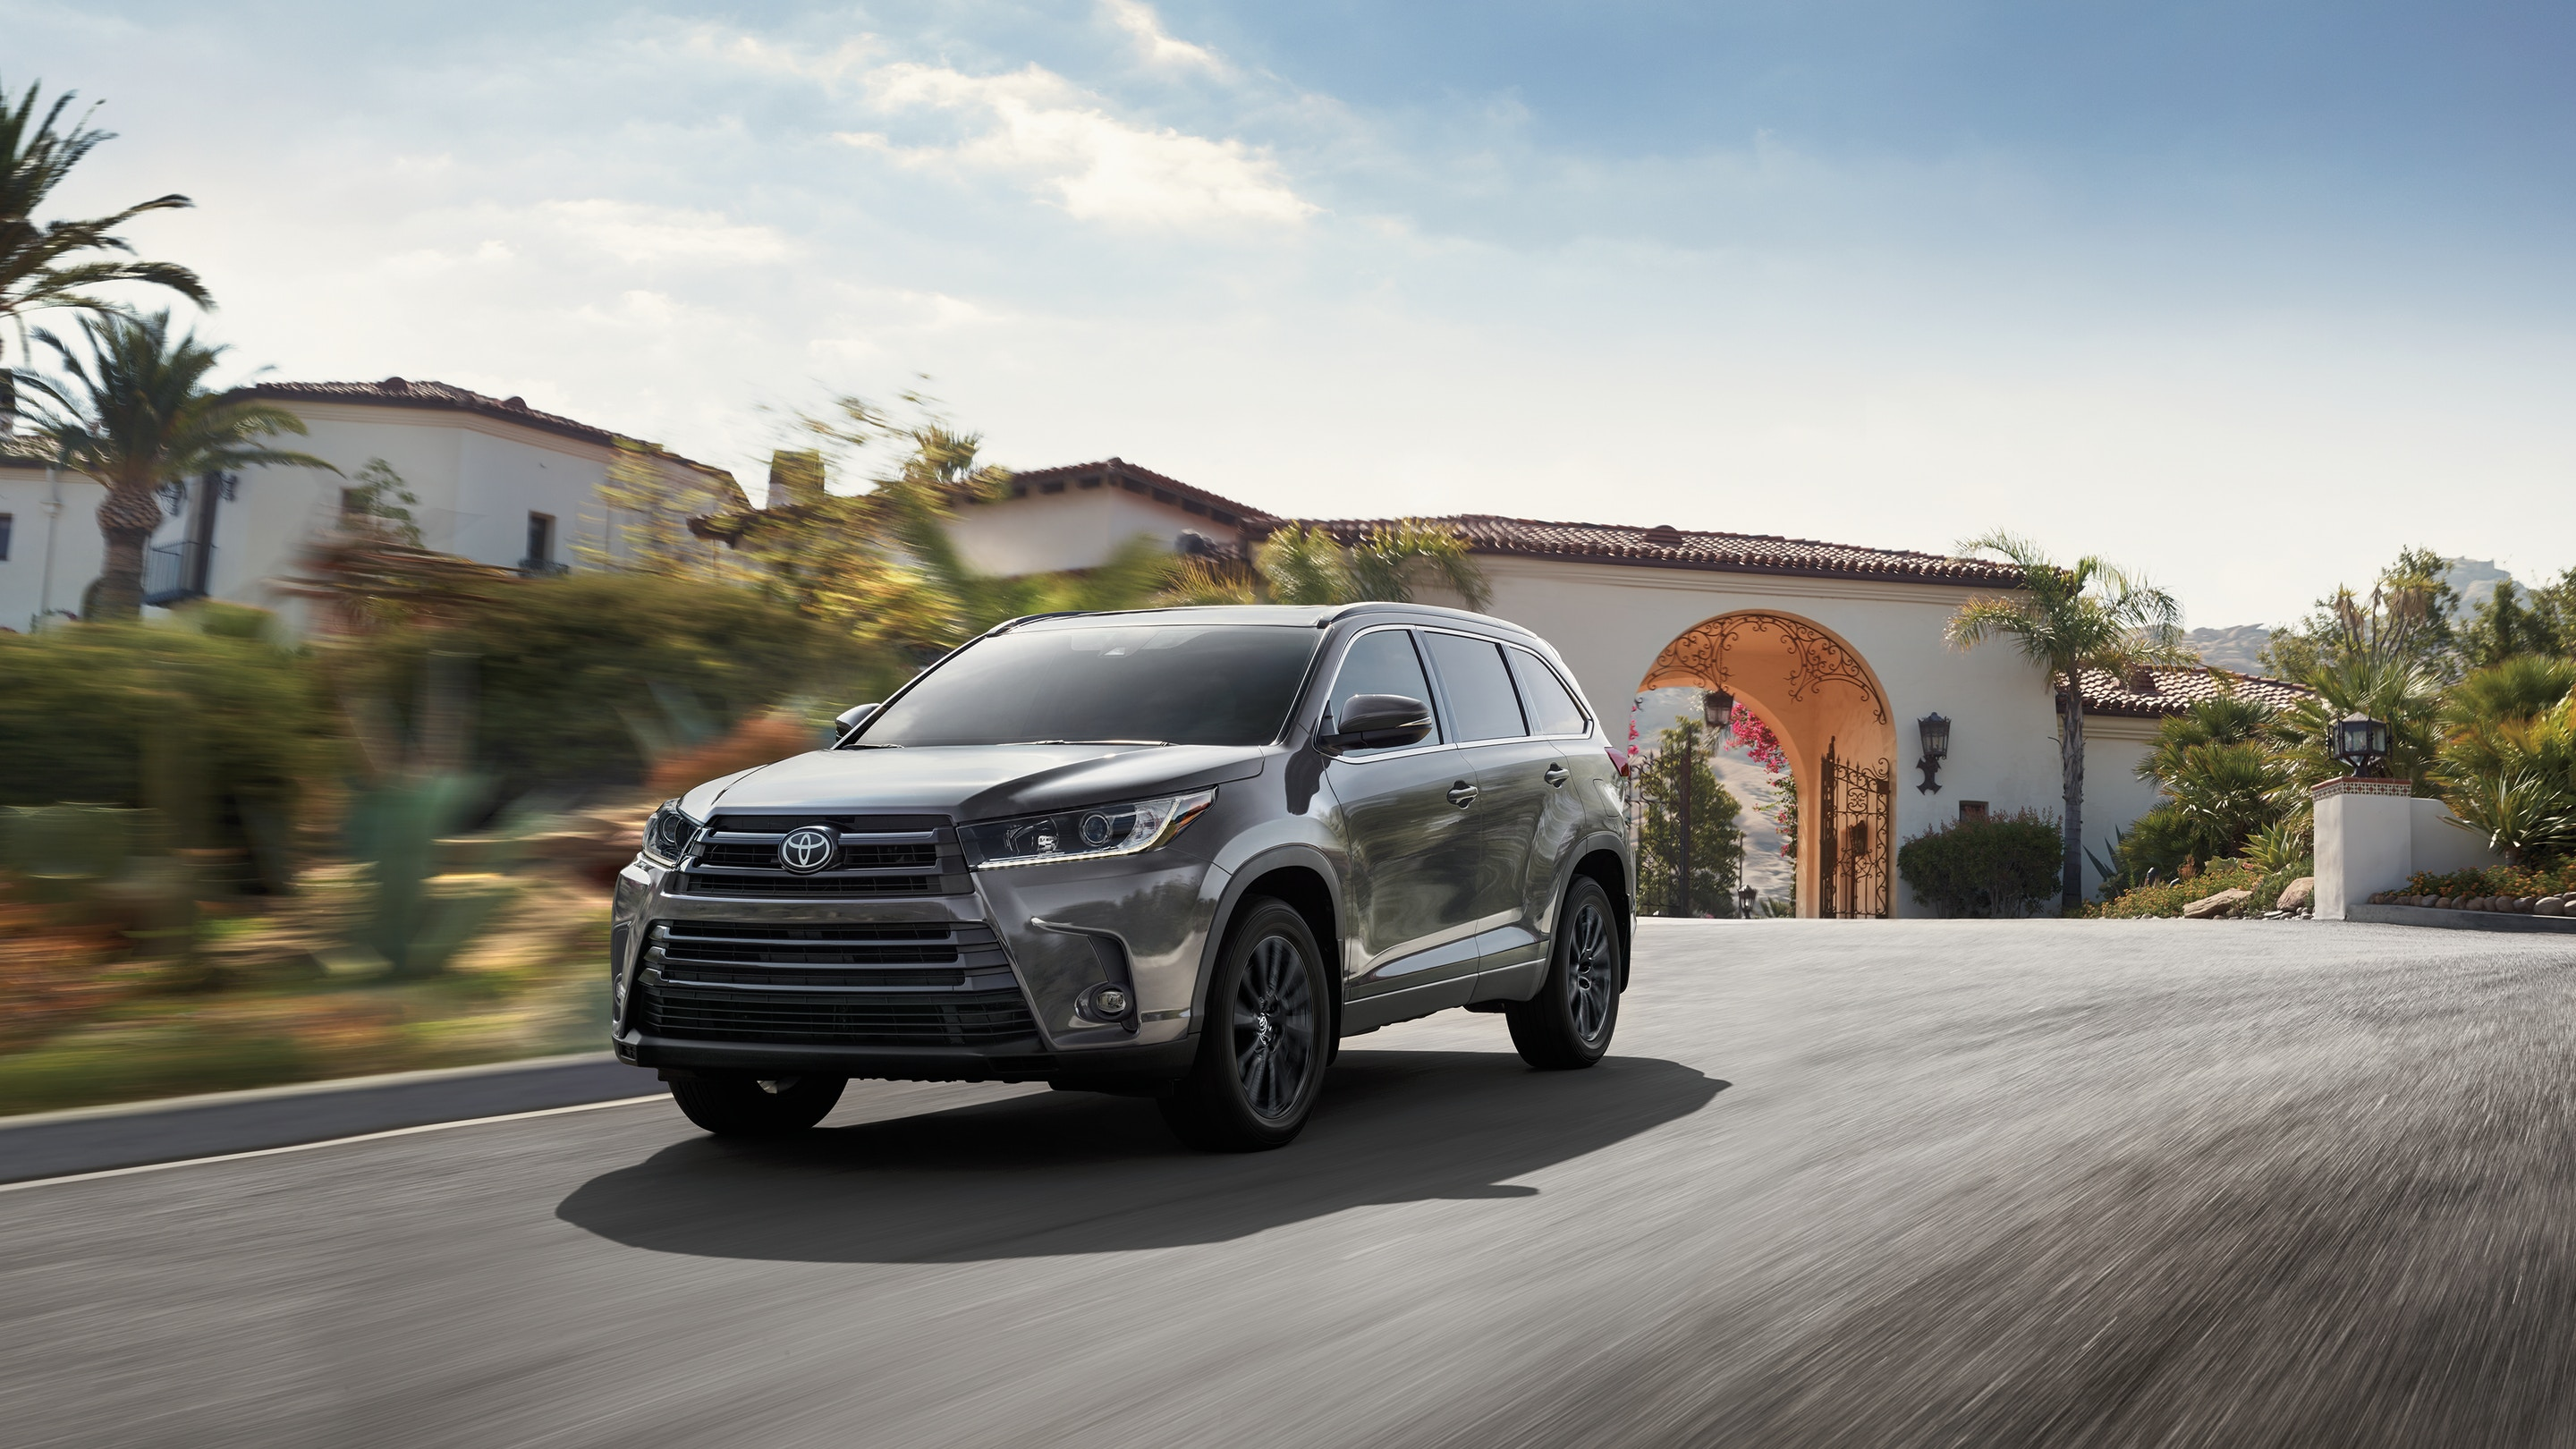 2019 Toyota Highlander for Sale near Janesville, WI